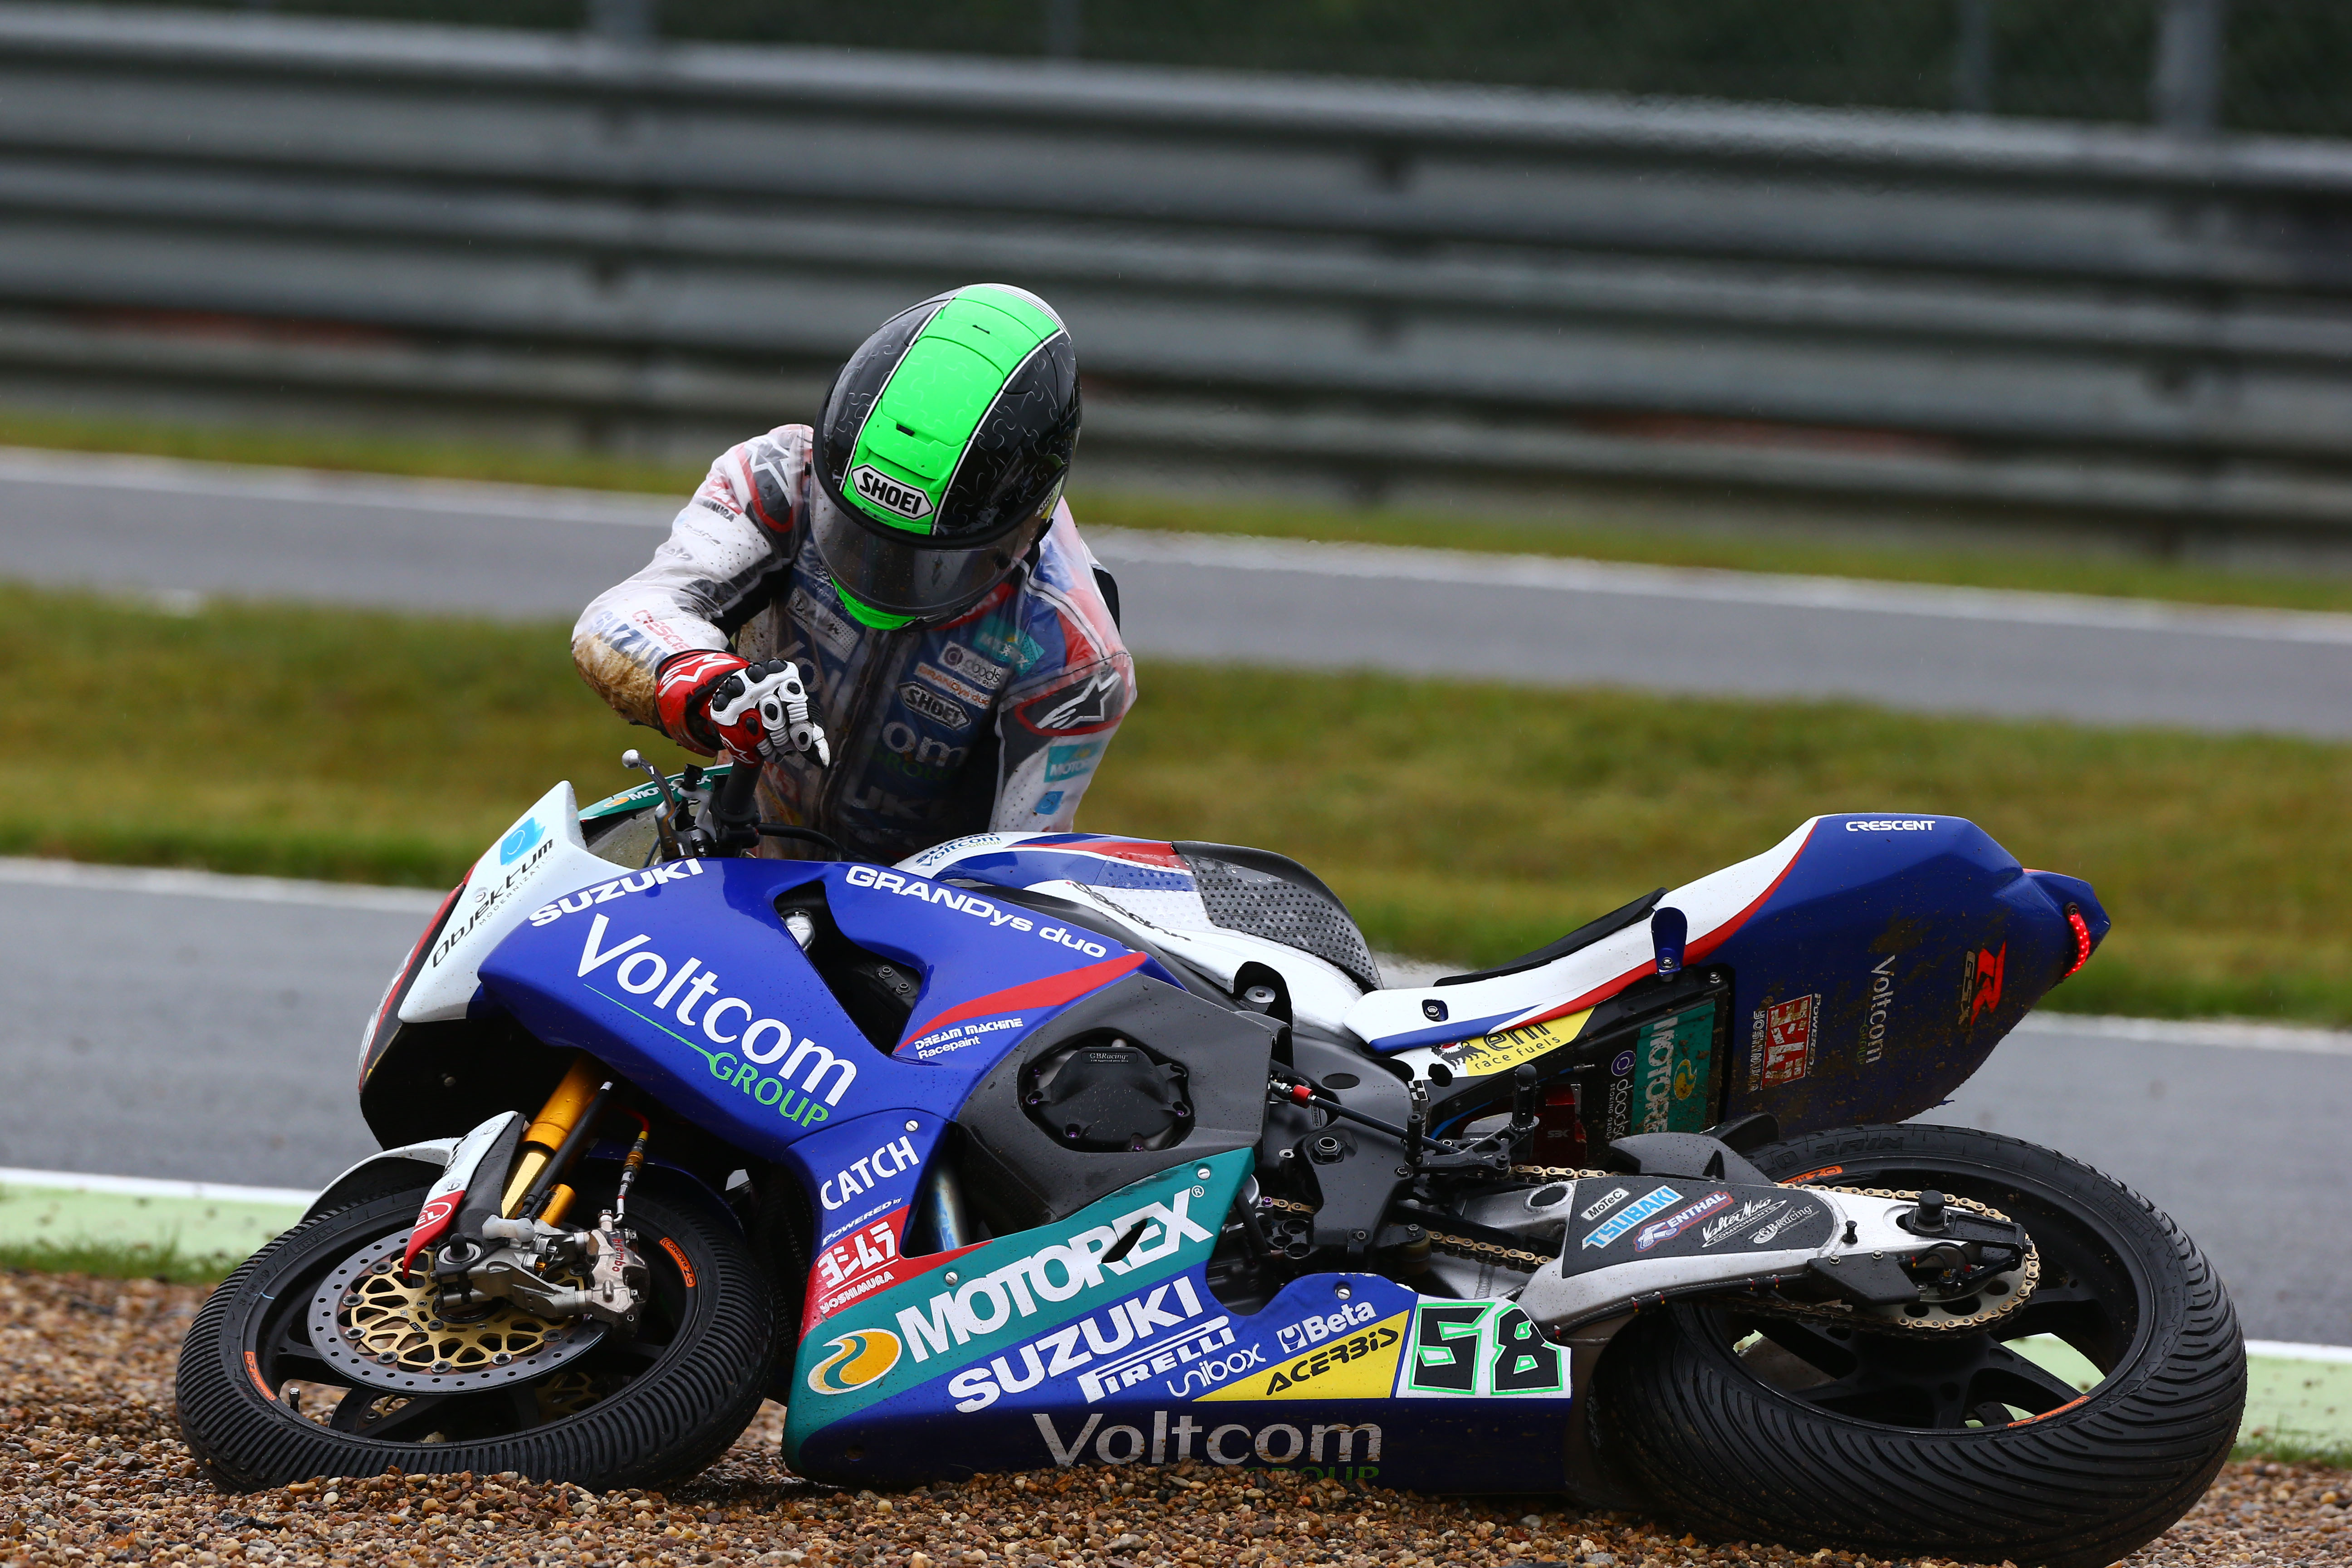 WSB 2014: Magny-Cours race 1 results